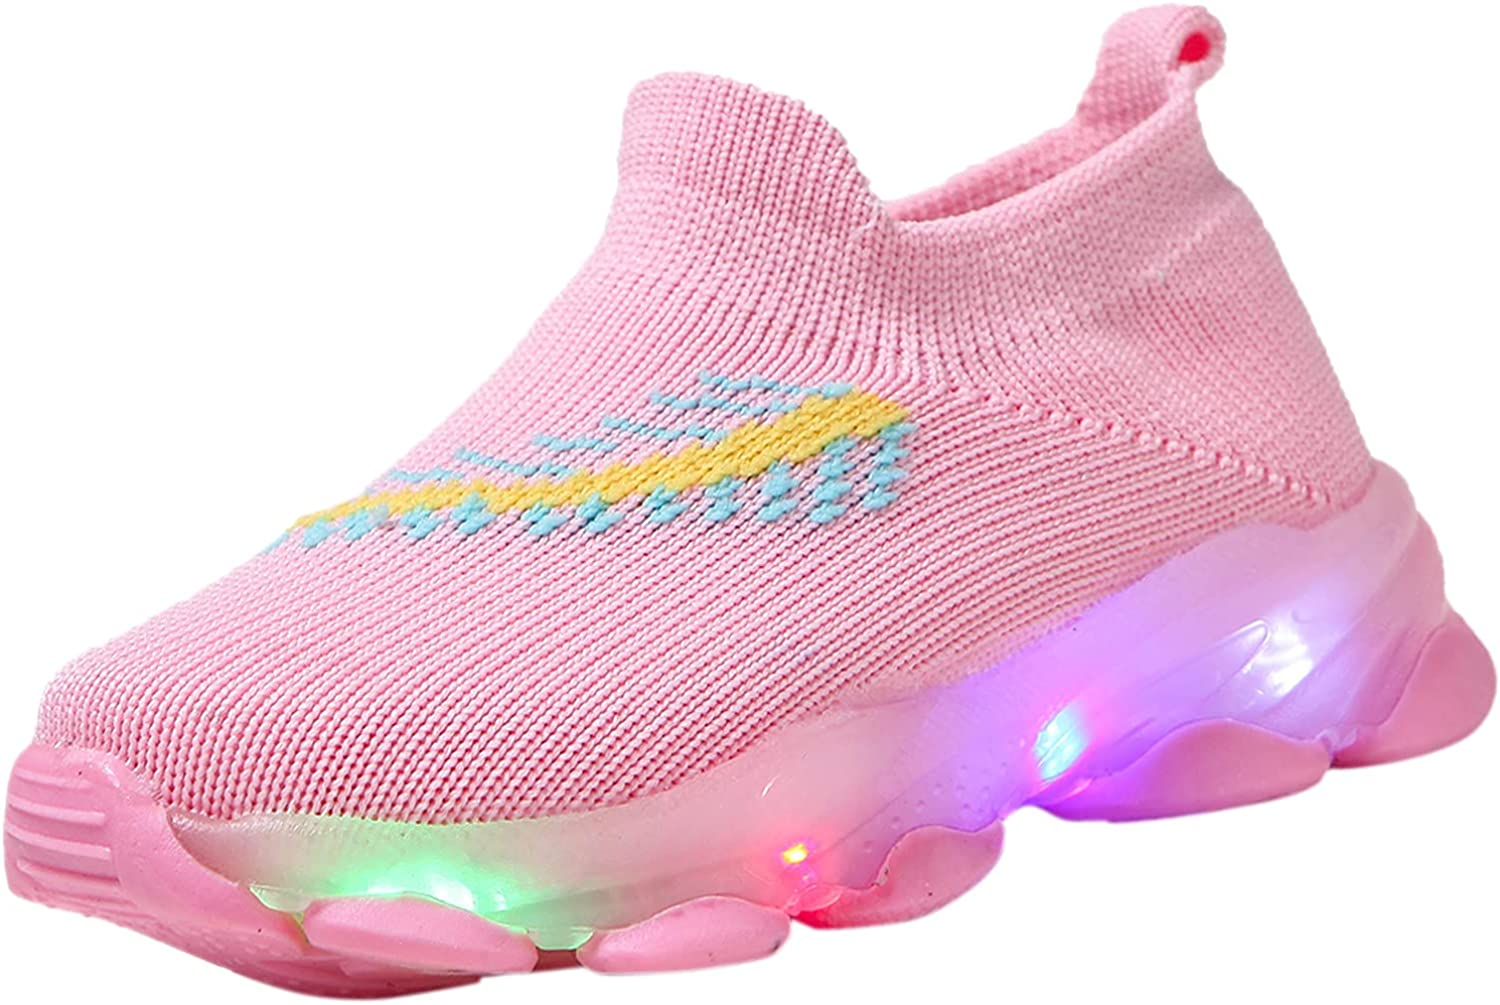 Kids Led Light Up Shoes Flashing Trainers,Fashionable Children Kid Baby Girls Boys Color Led Shoes Mesh Luminous Sport Running Kids Sneakers Shoes,Creative Children Day Birthday Gift